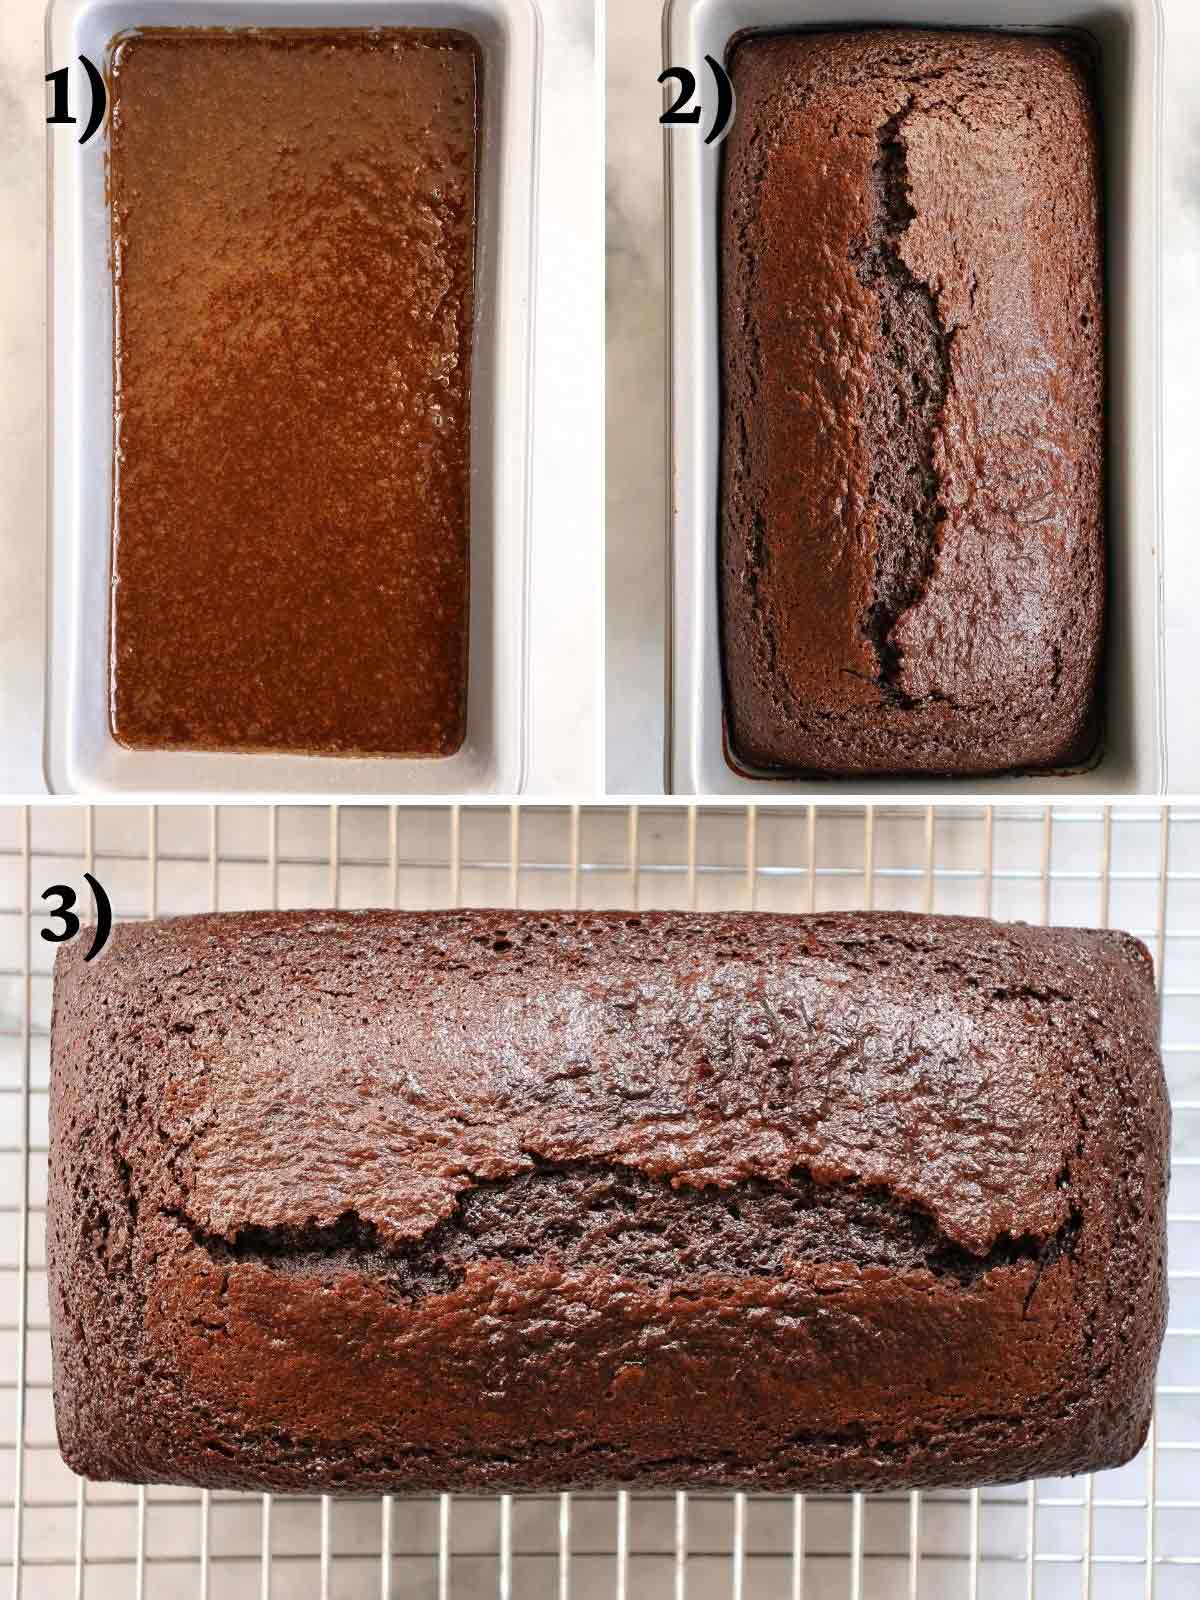 A loaf of French gingerbread before and after baking, and cooking on a wire rack.